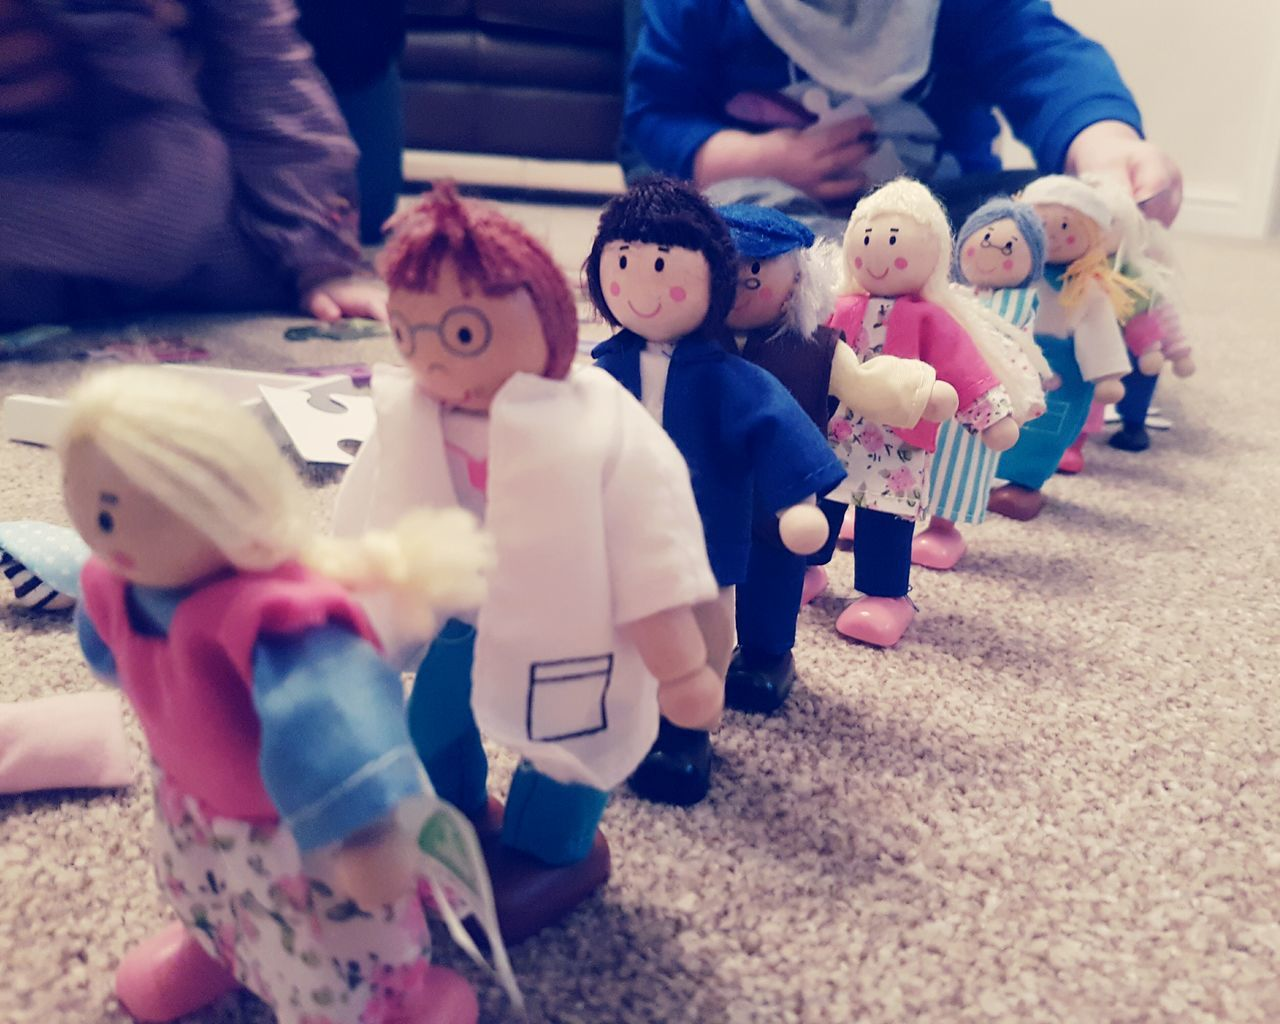 Toys on parade People Indoors  Human Hand Toys Toysphotography Dolls Wooden Toys Vintage Toys Wooden Dolls Early Learning Childhood Playing Playing Games Queing Lines Lining Up Rows Of Things Rows